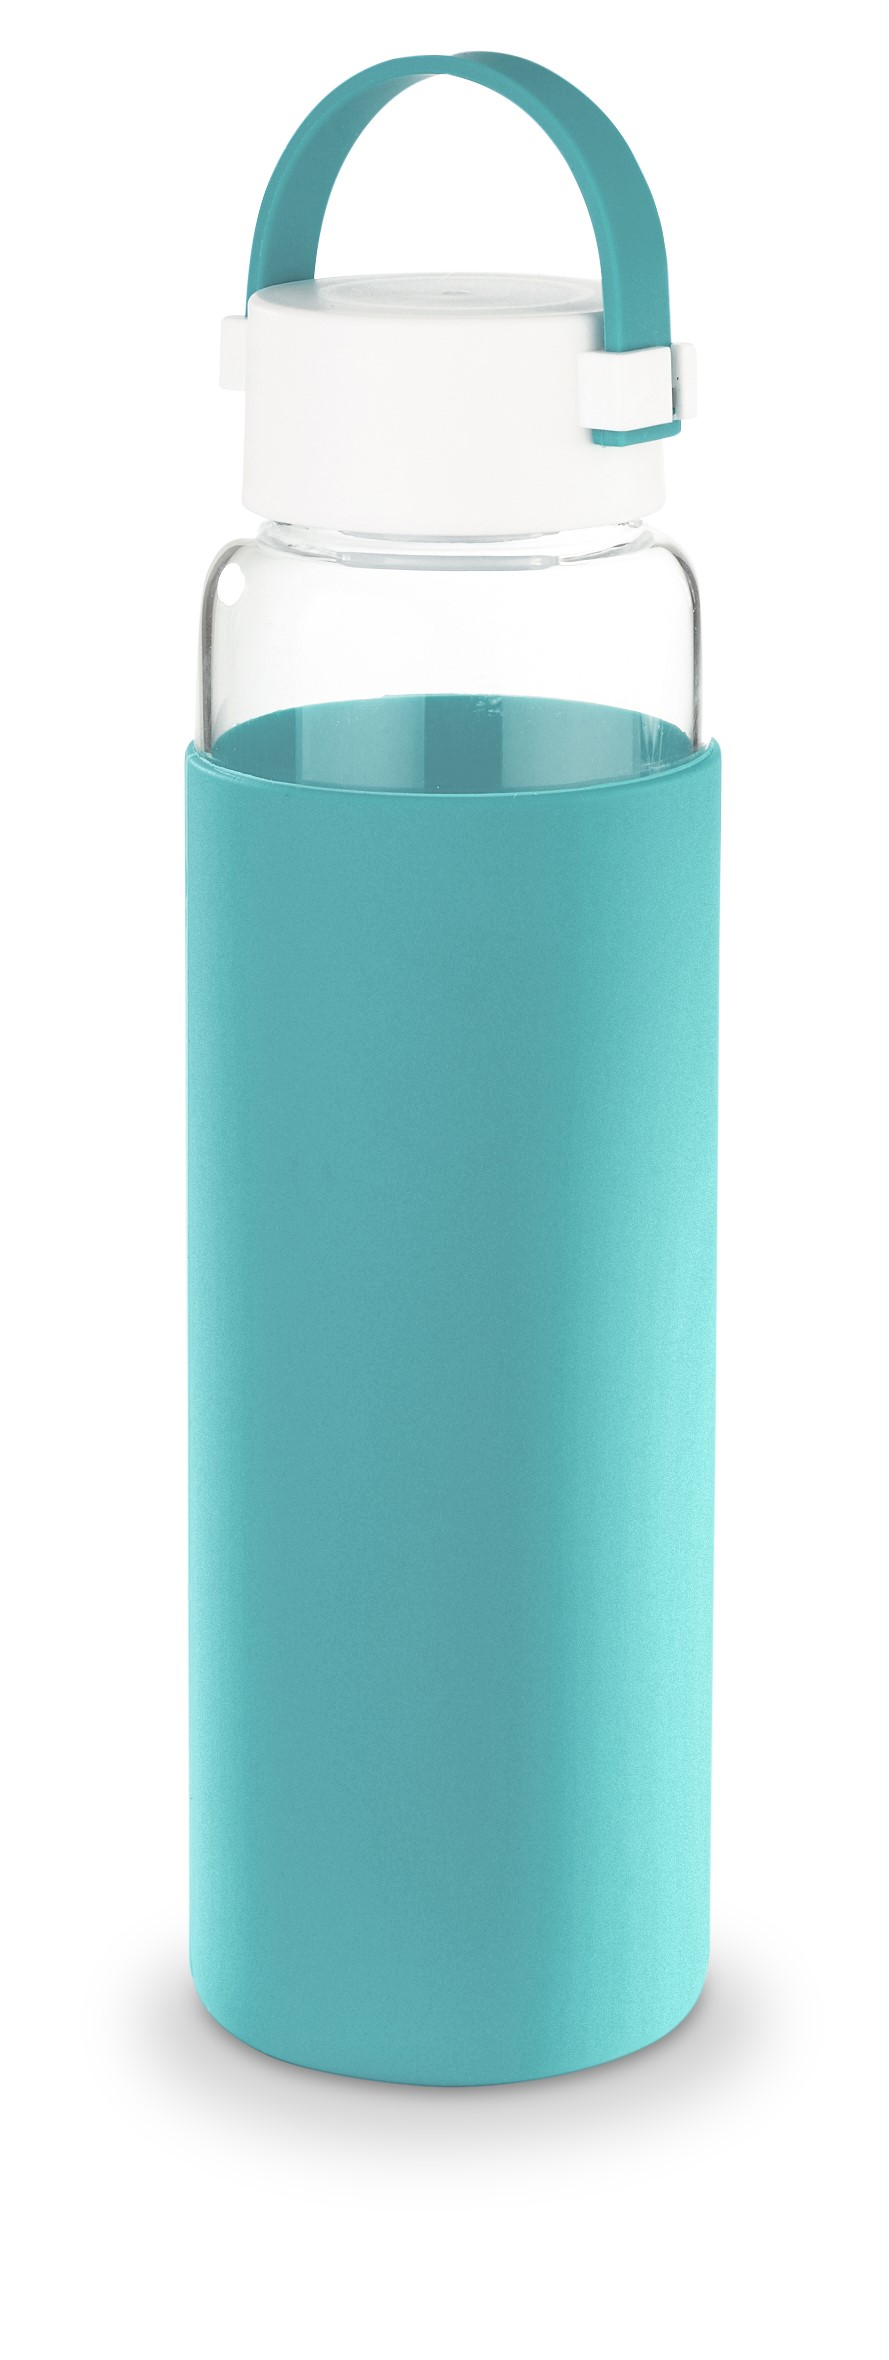 Kooshty Glass Water Bottle KOOSH-8750